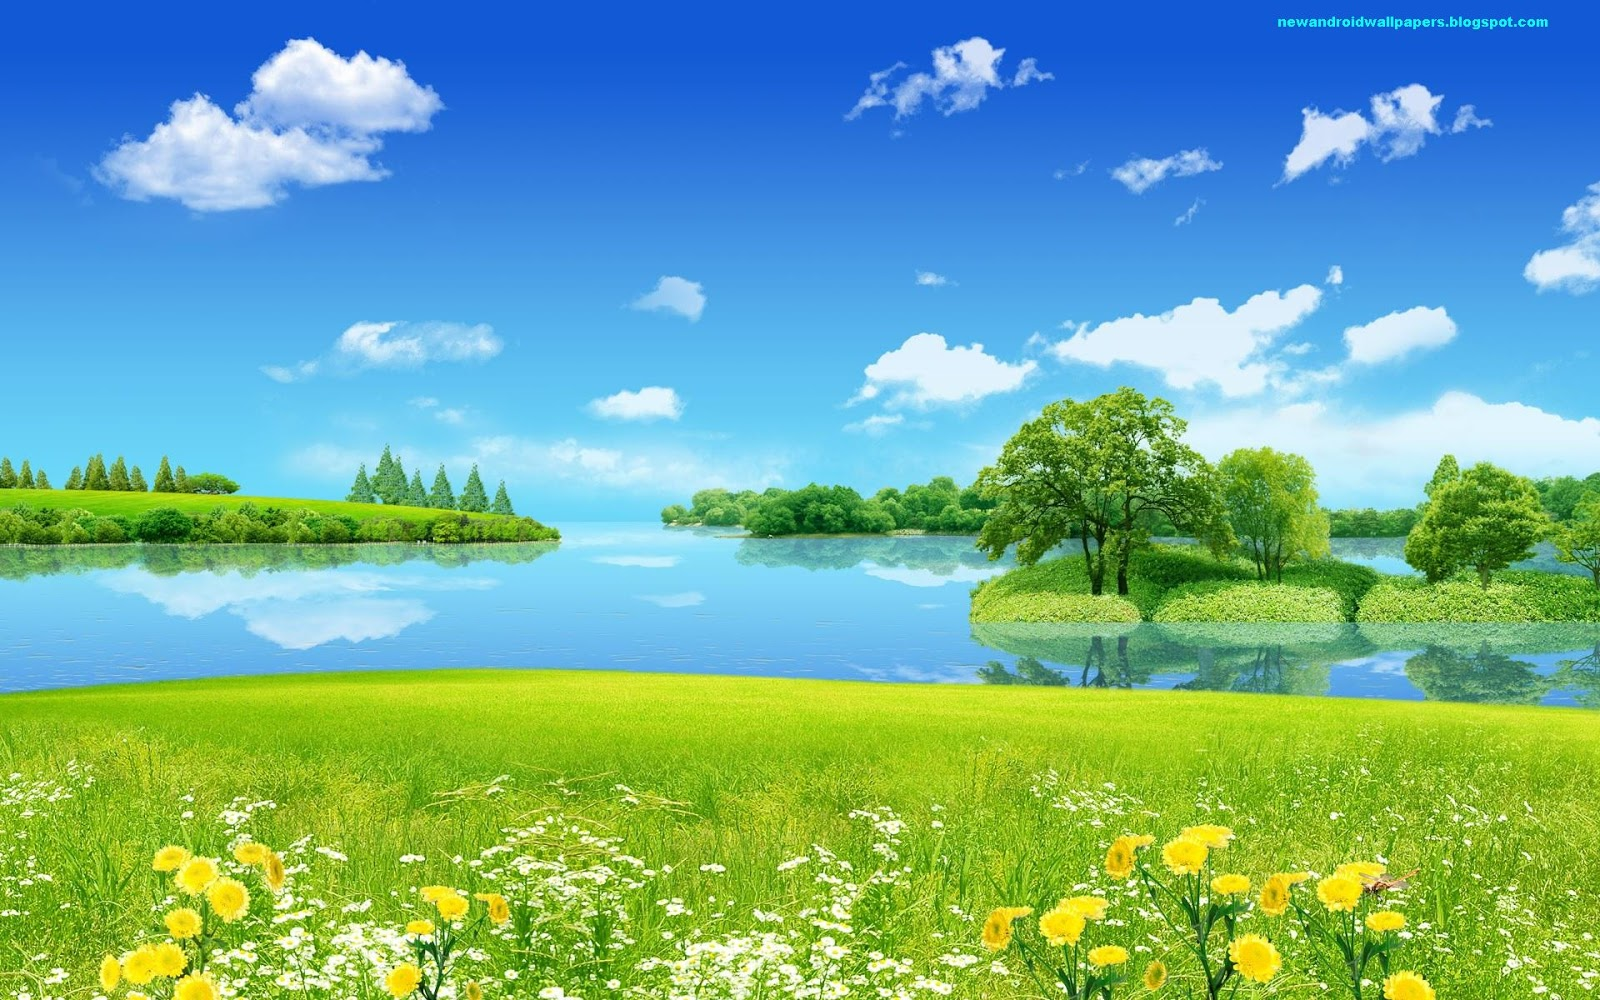 HD Natural Scenery Wallpaper Creative Summer Dreamland the Sky and the Sea Are Quite Blue Smiling Flowers Everything is Turning Good